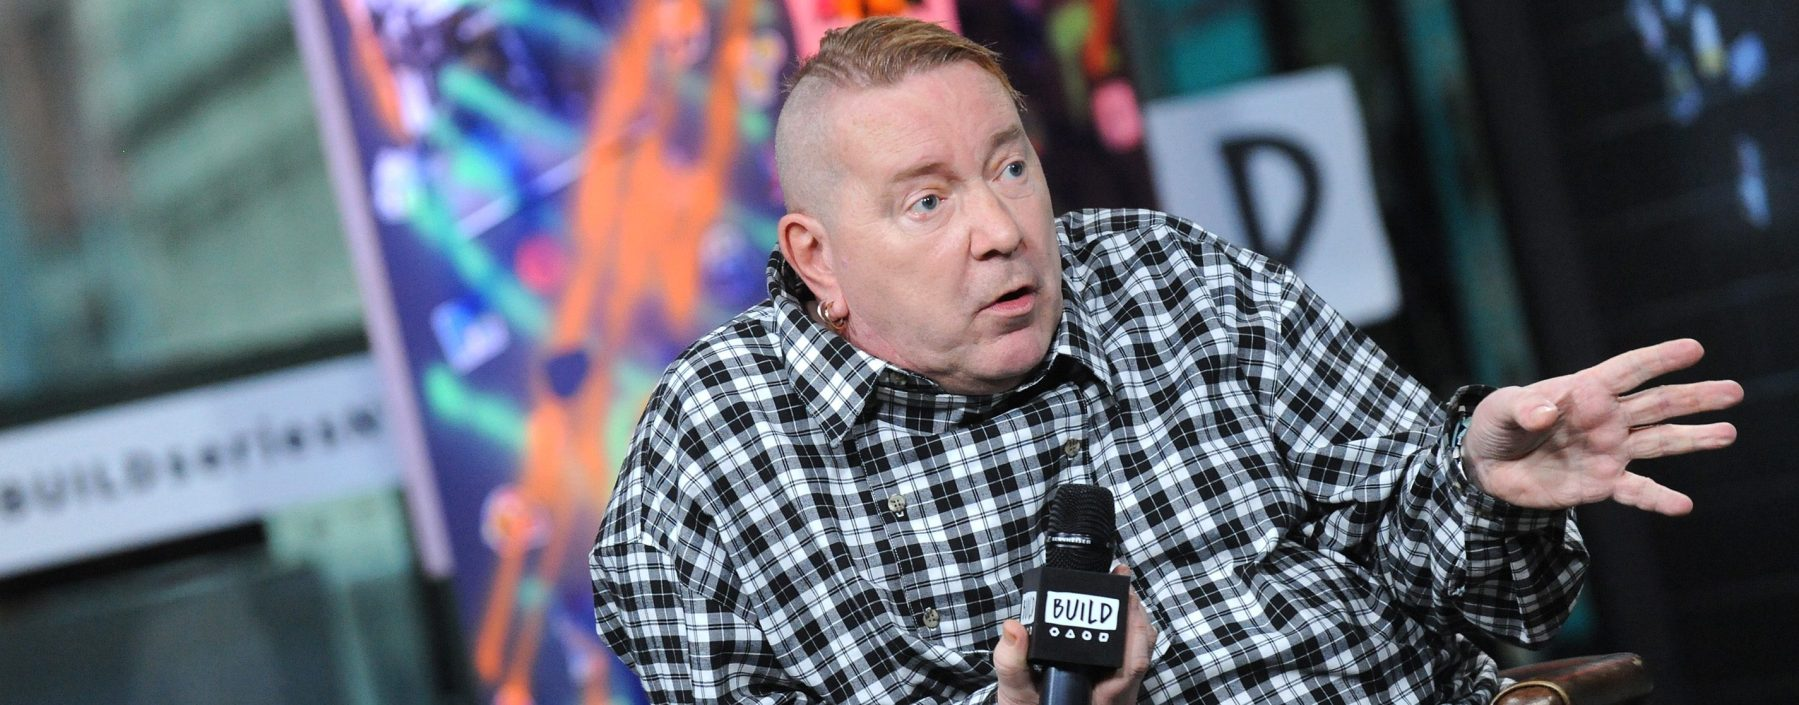 Singer-songwriter John Lydon visits Build Series to discuss the documetary 'The Public Image Is Rotten' at Build Studio on September 13, 2018 in New York City.  (Photo by Desiree Navarro/Getty Images)